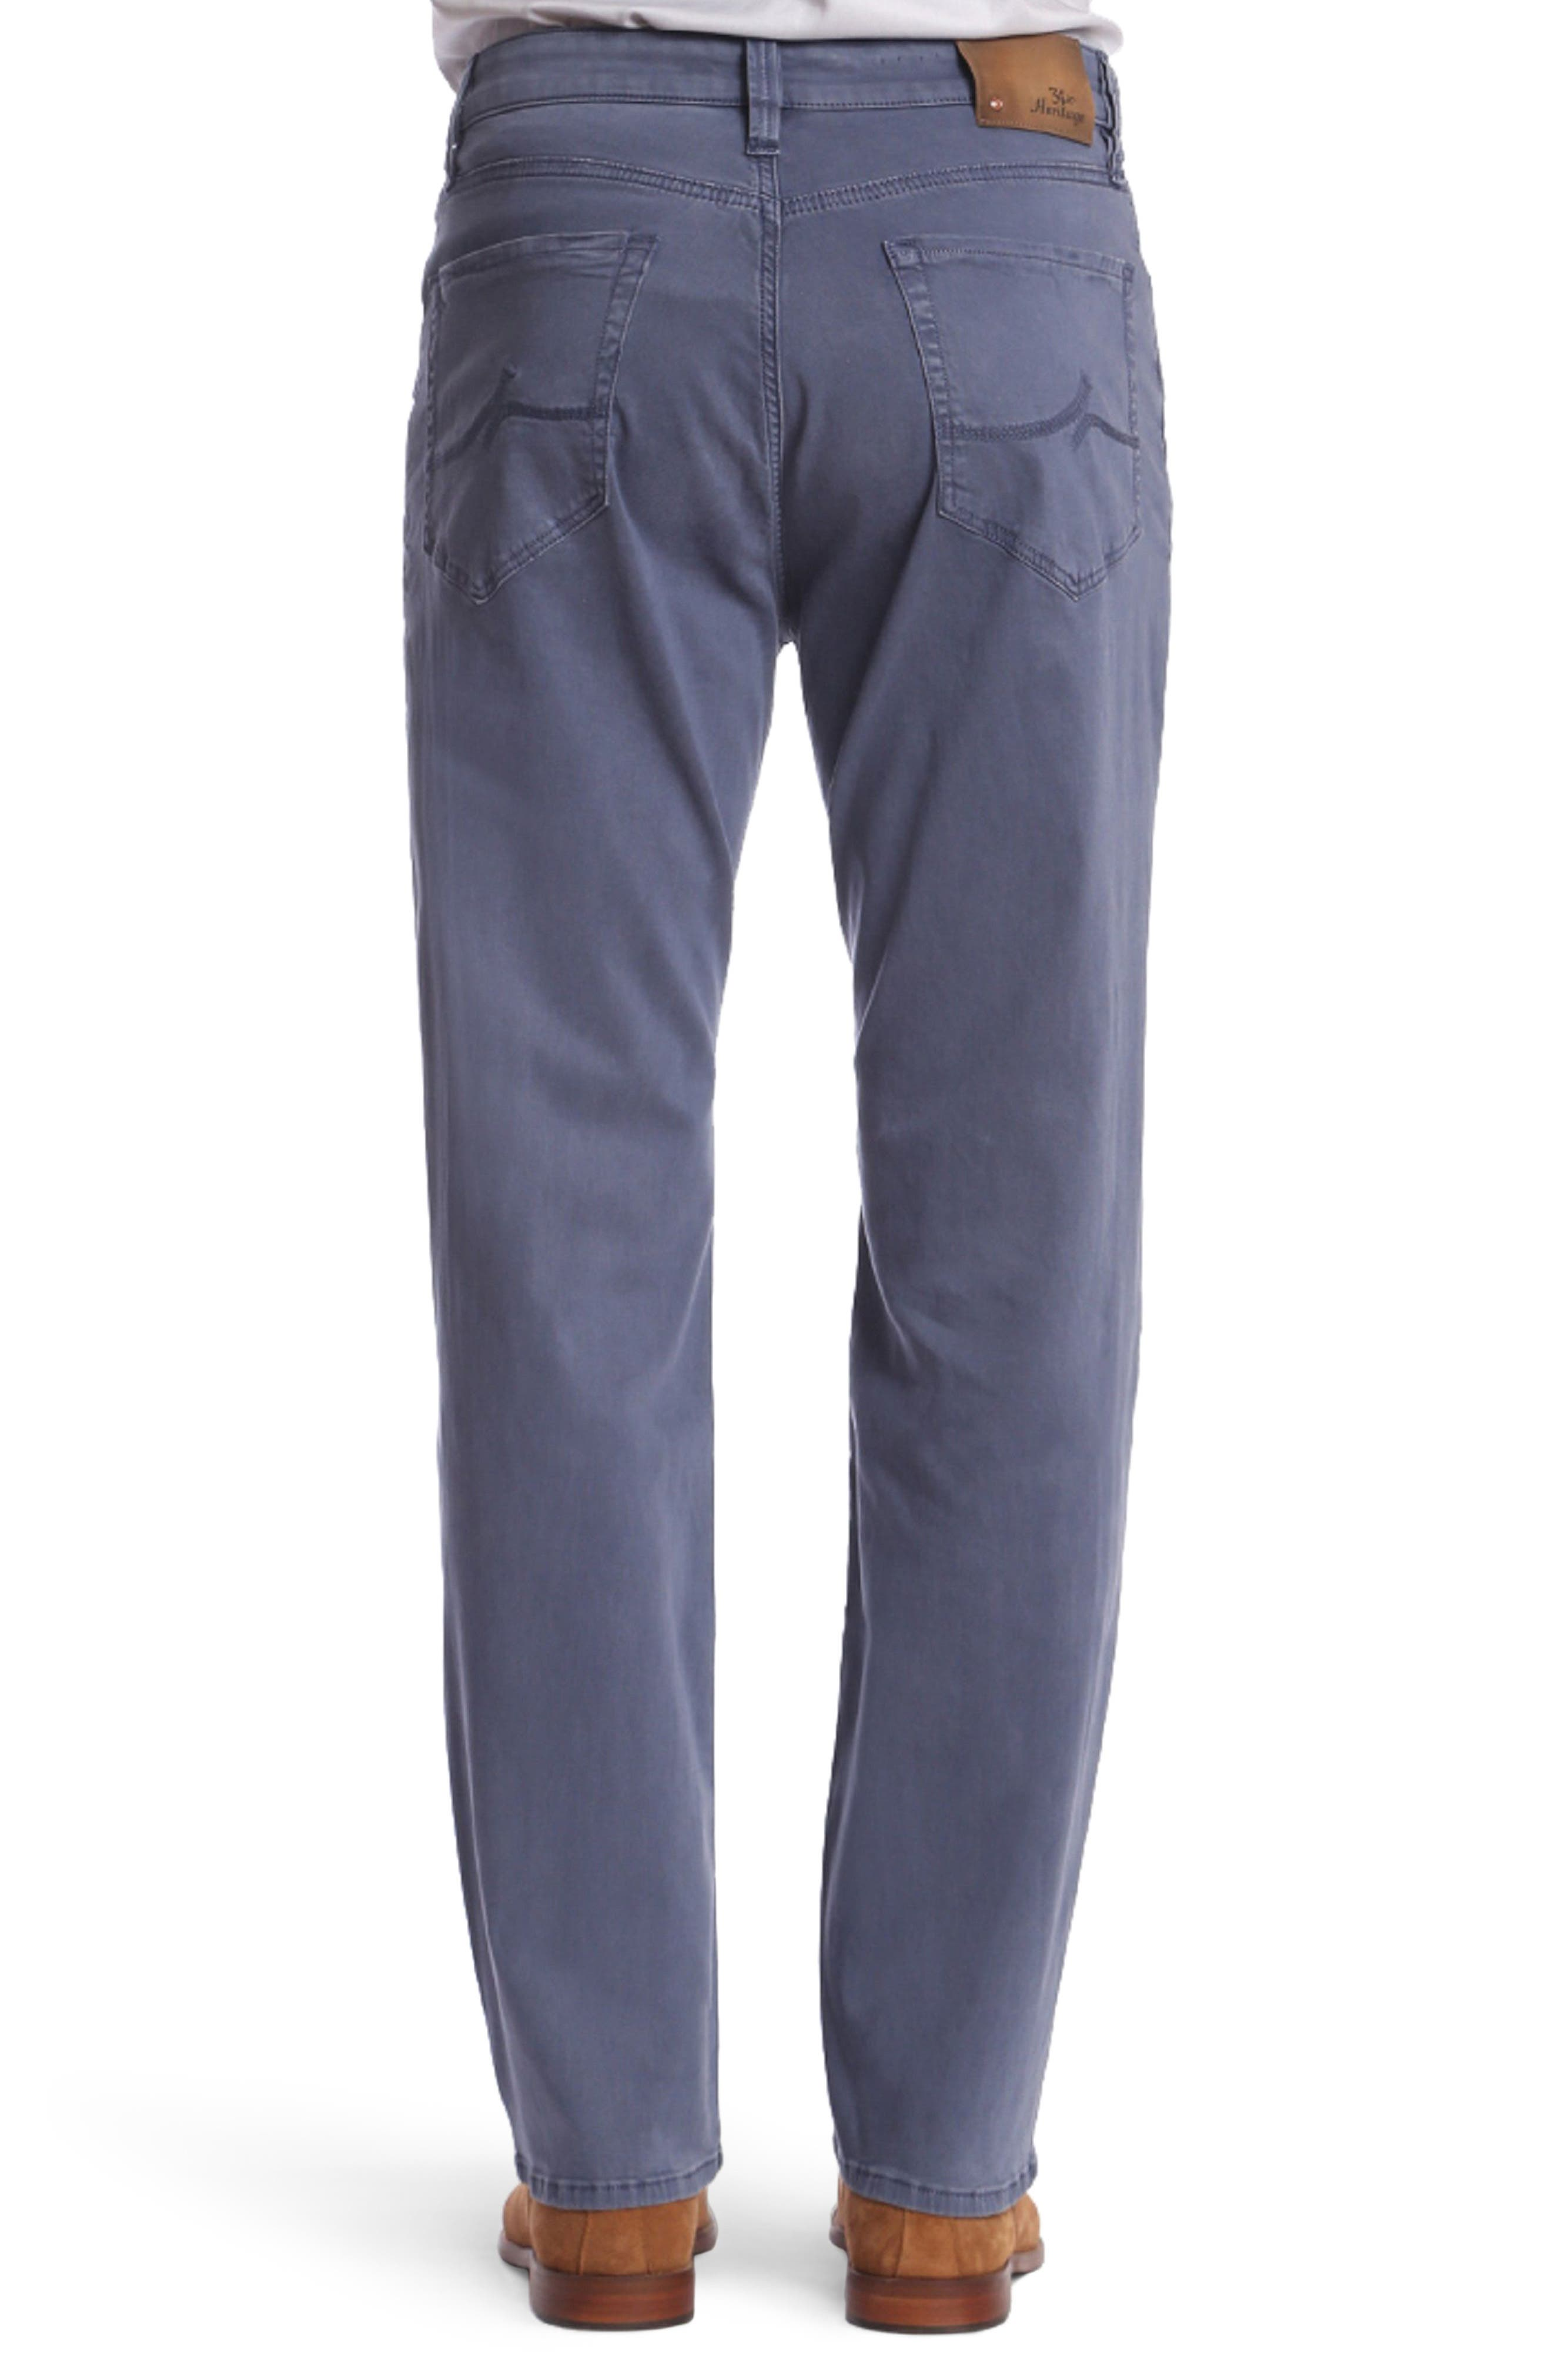 Charisma Relaxed Fit Jeans,                             Alternate thumbnail 2, color,                             Horizon Twill